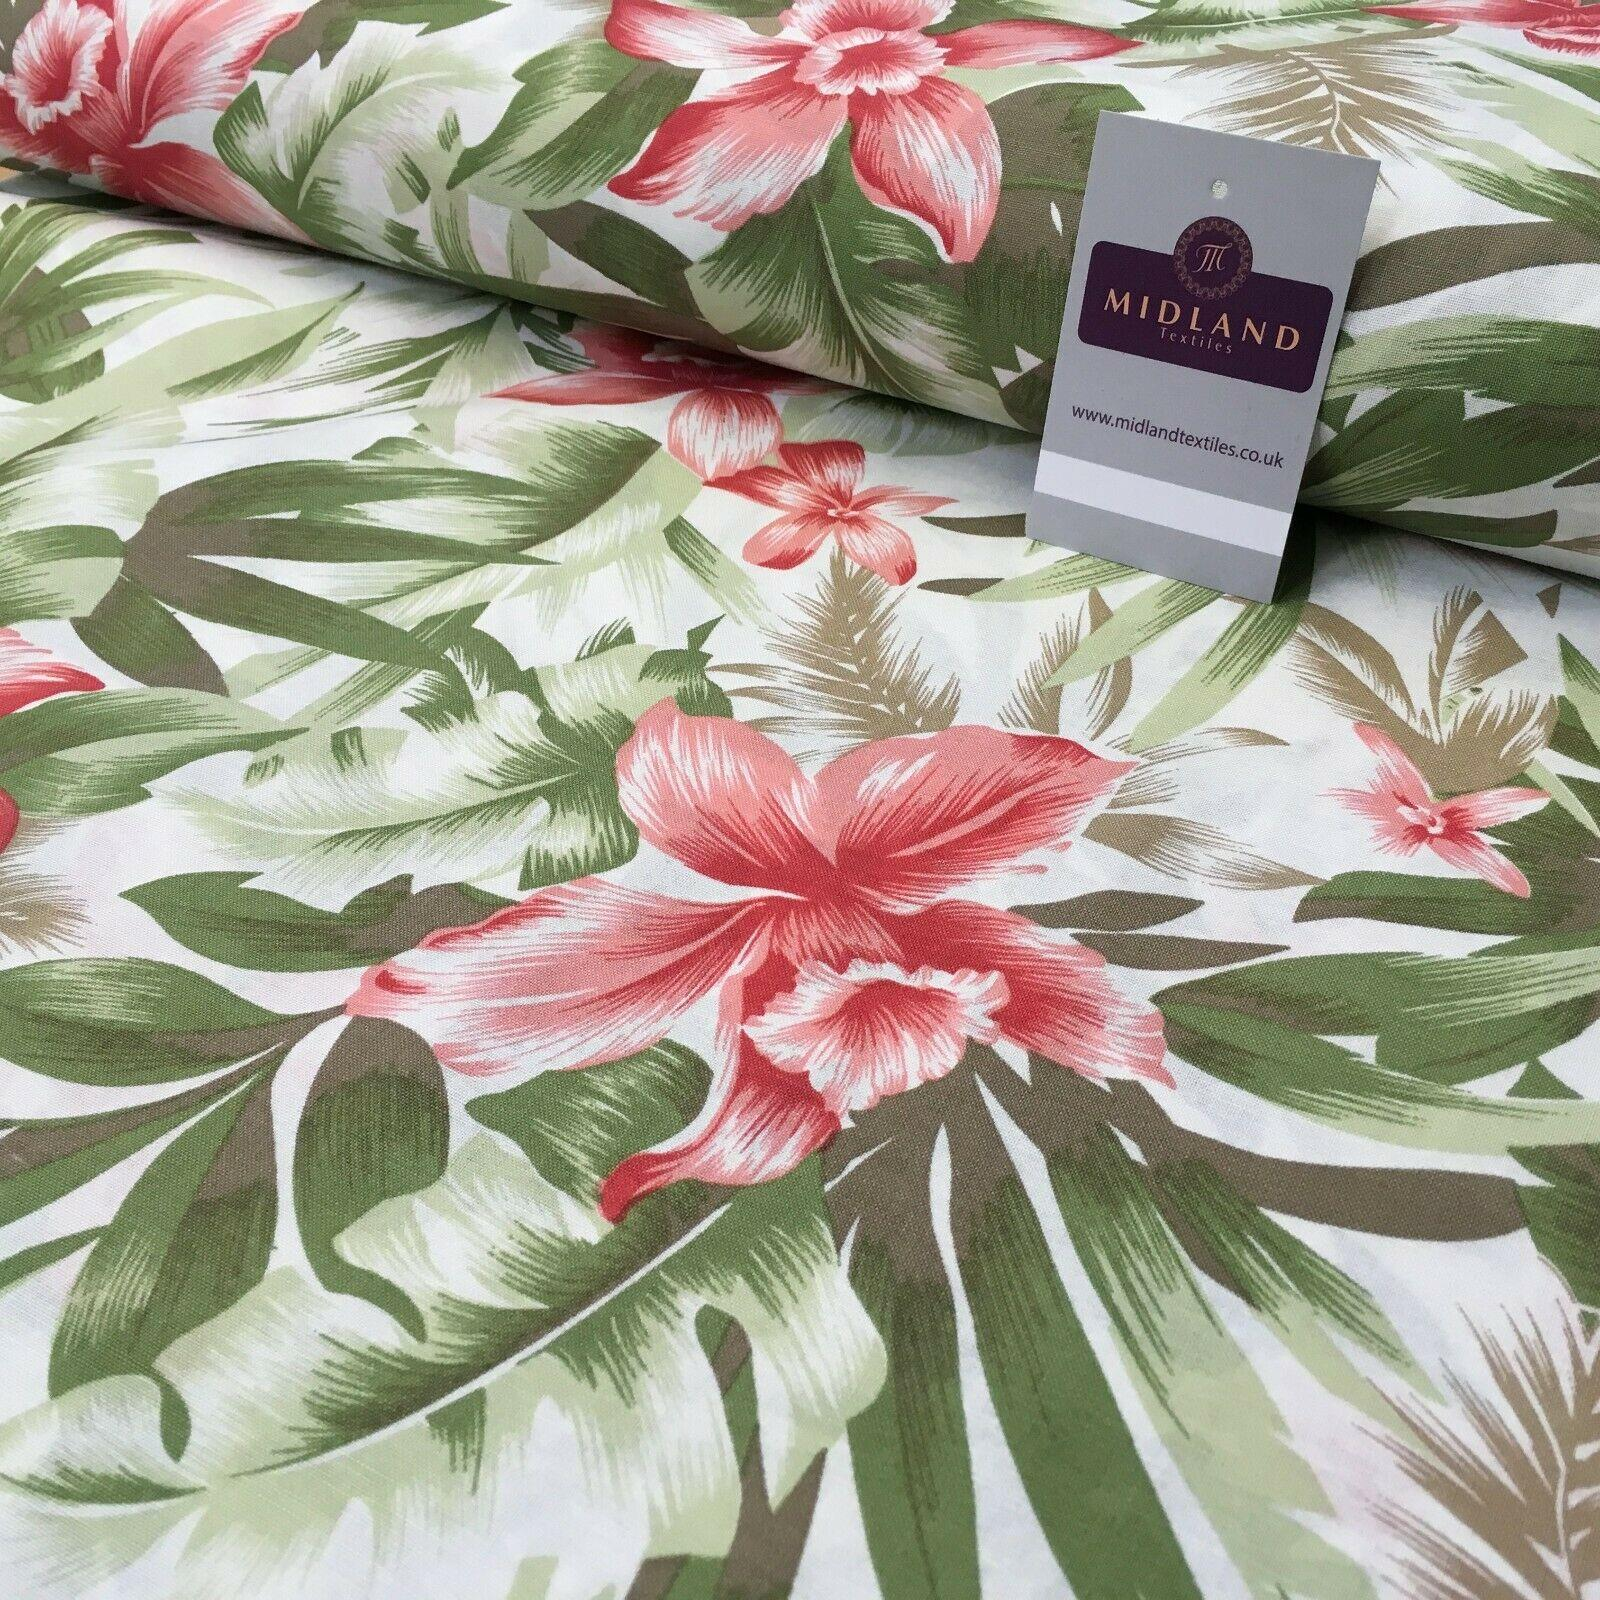 Rose Green Floral Printed Cotton Linen Dress Fabric 150cm Wide MK1086-4